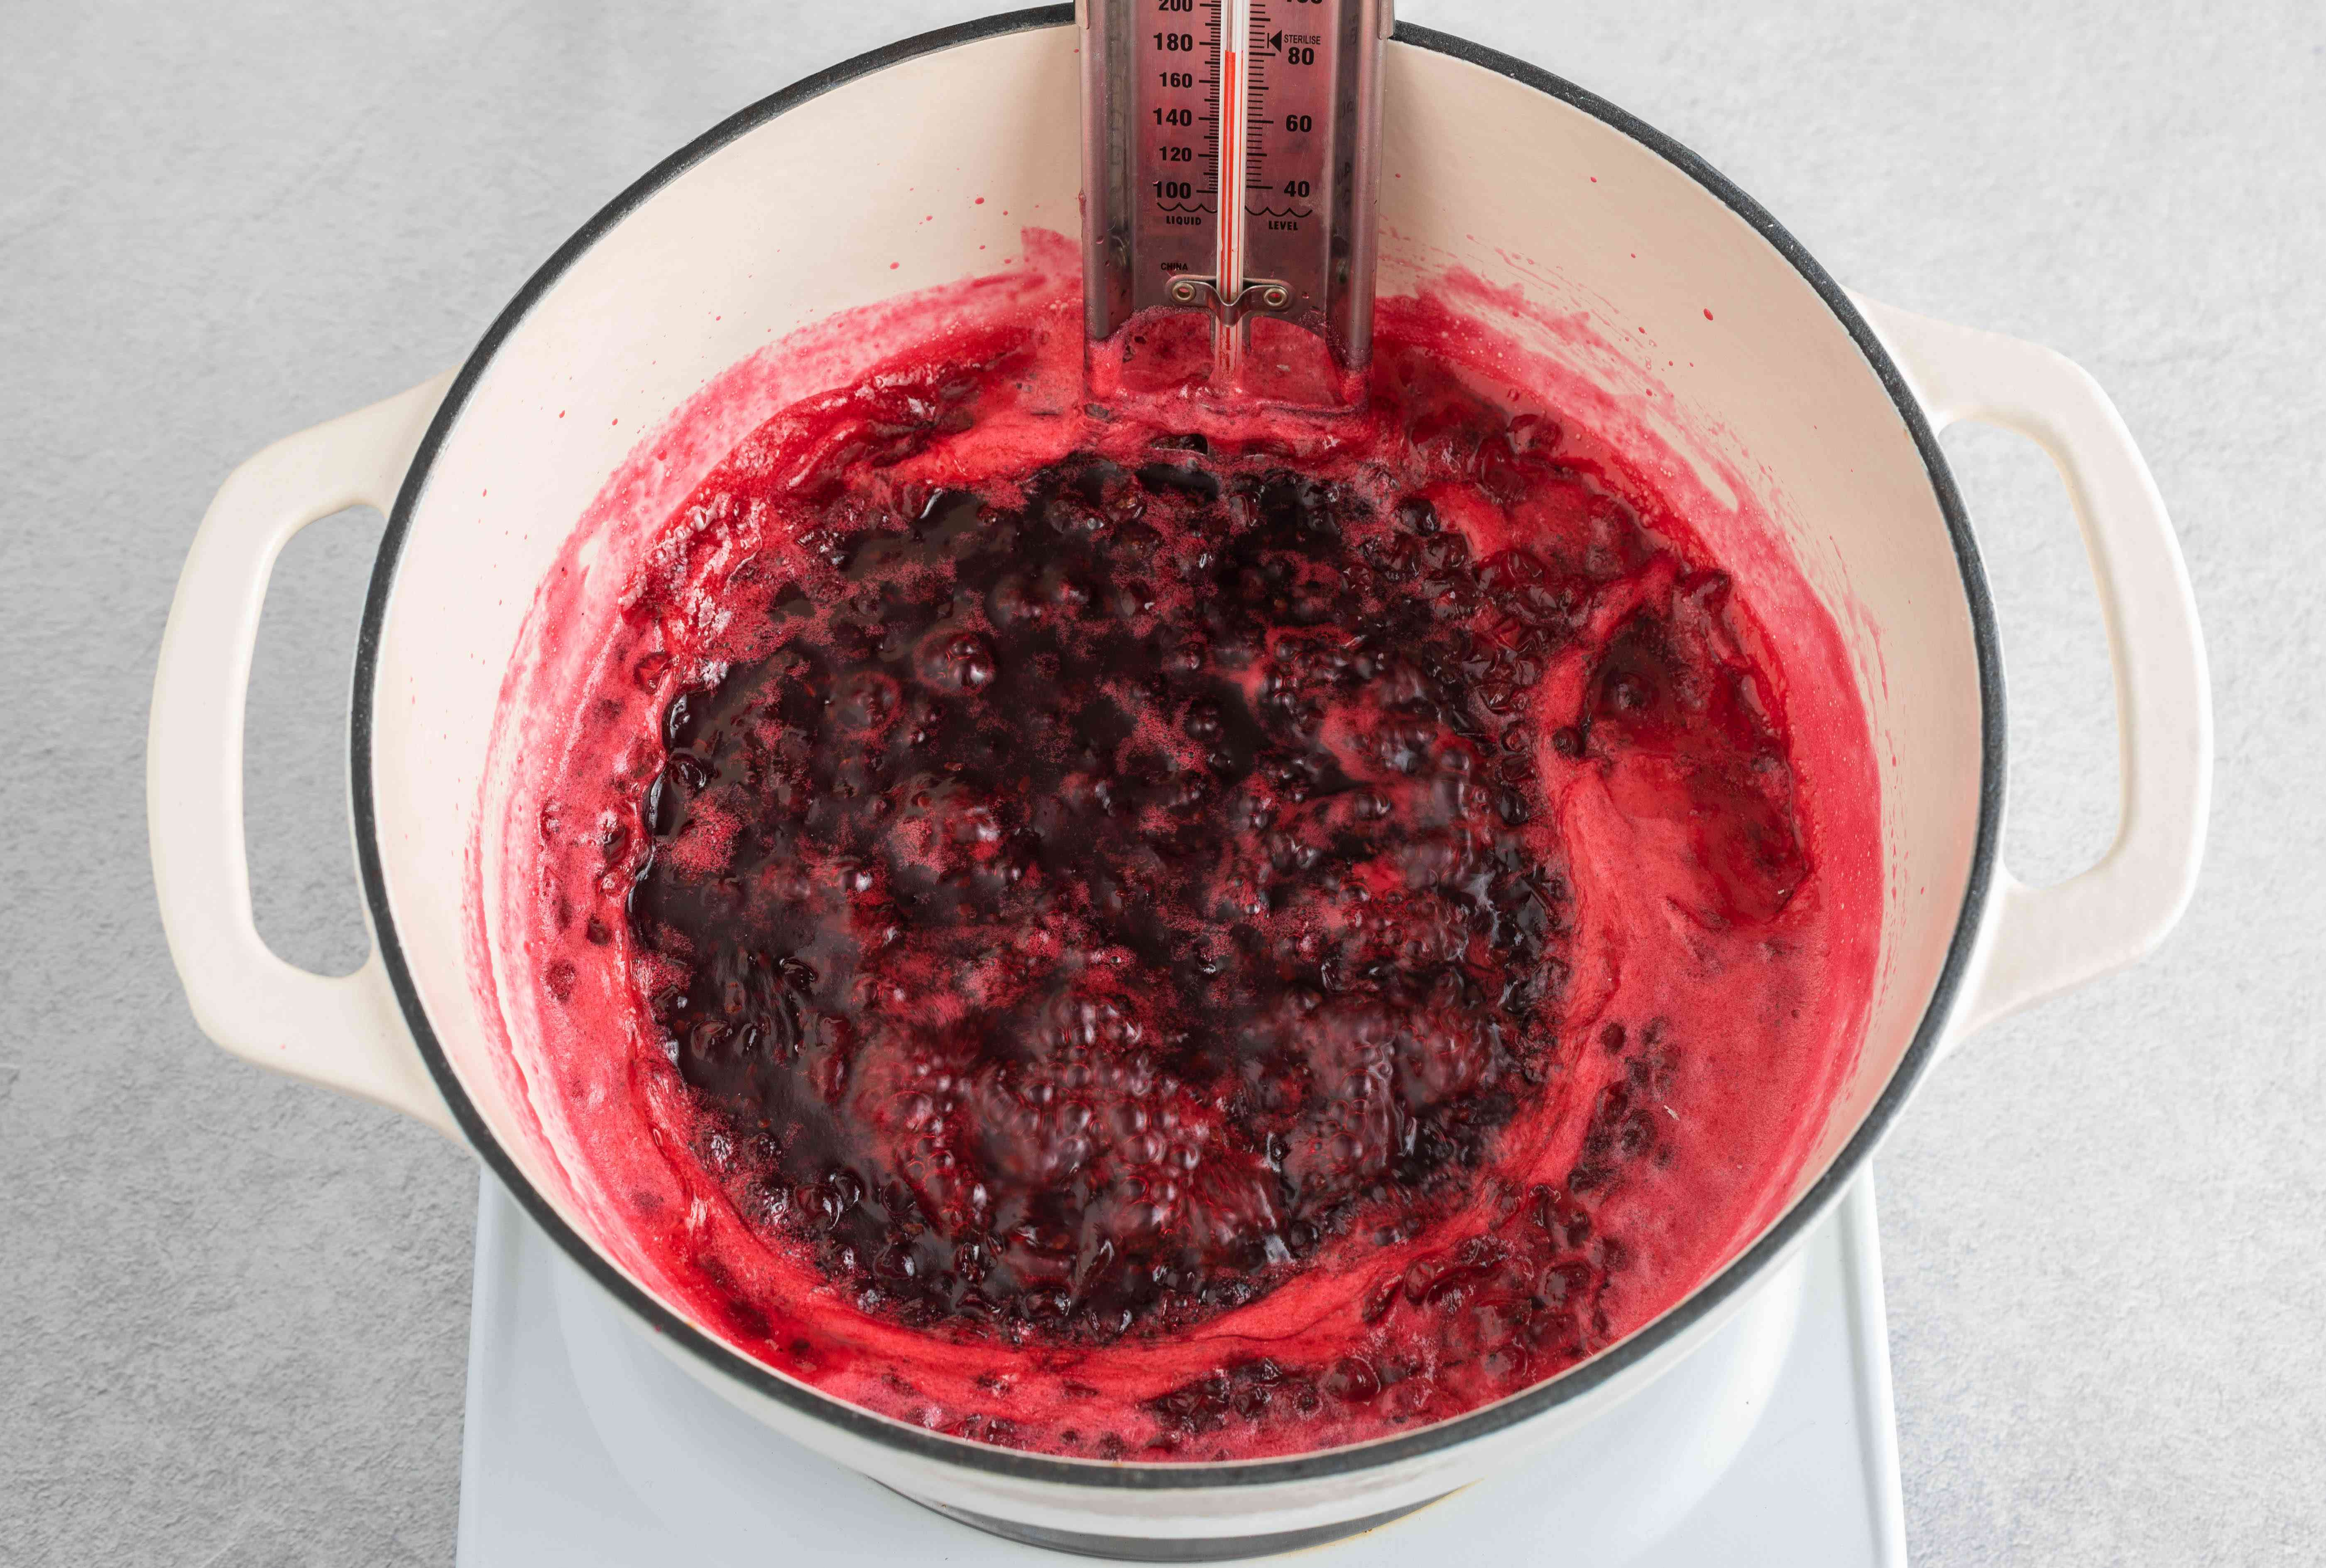 red currants being cooked in a large white pot testing temperature with a thermometer